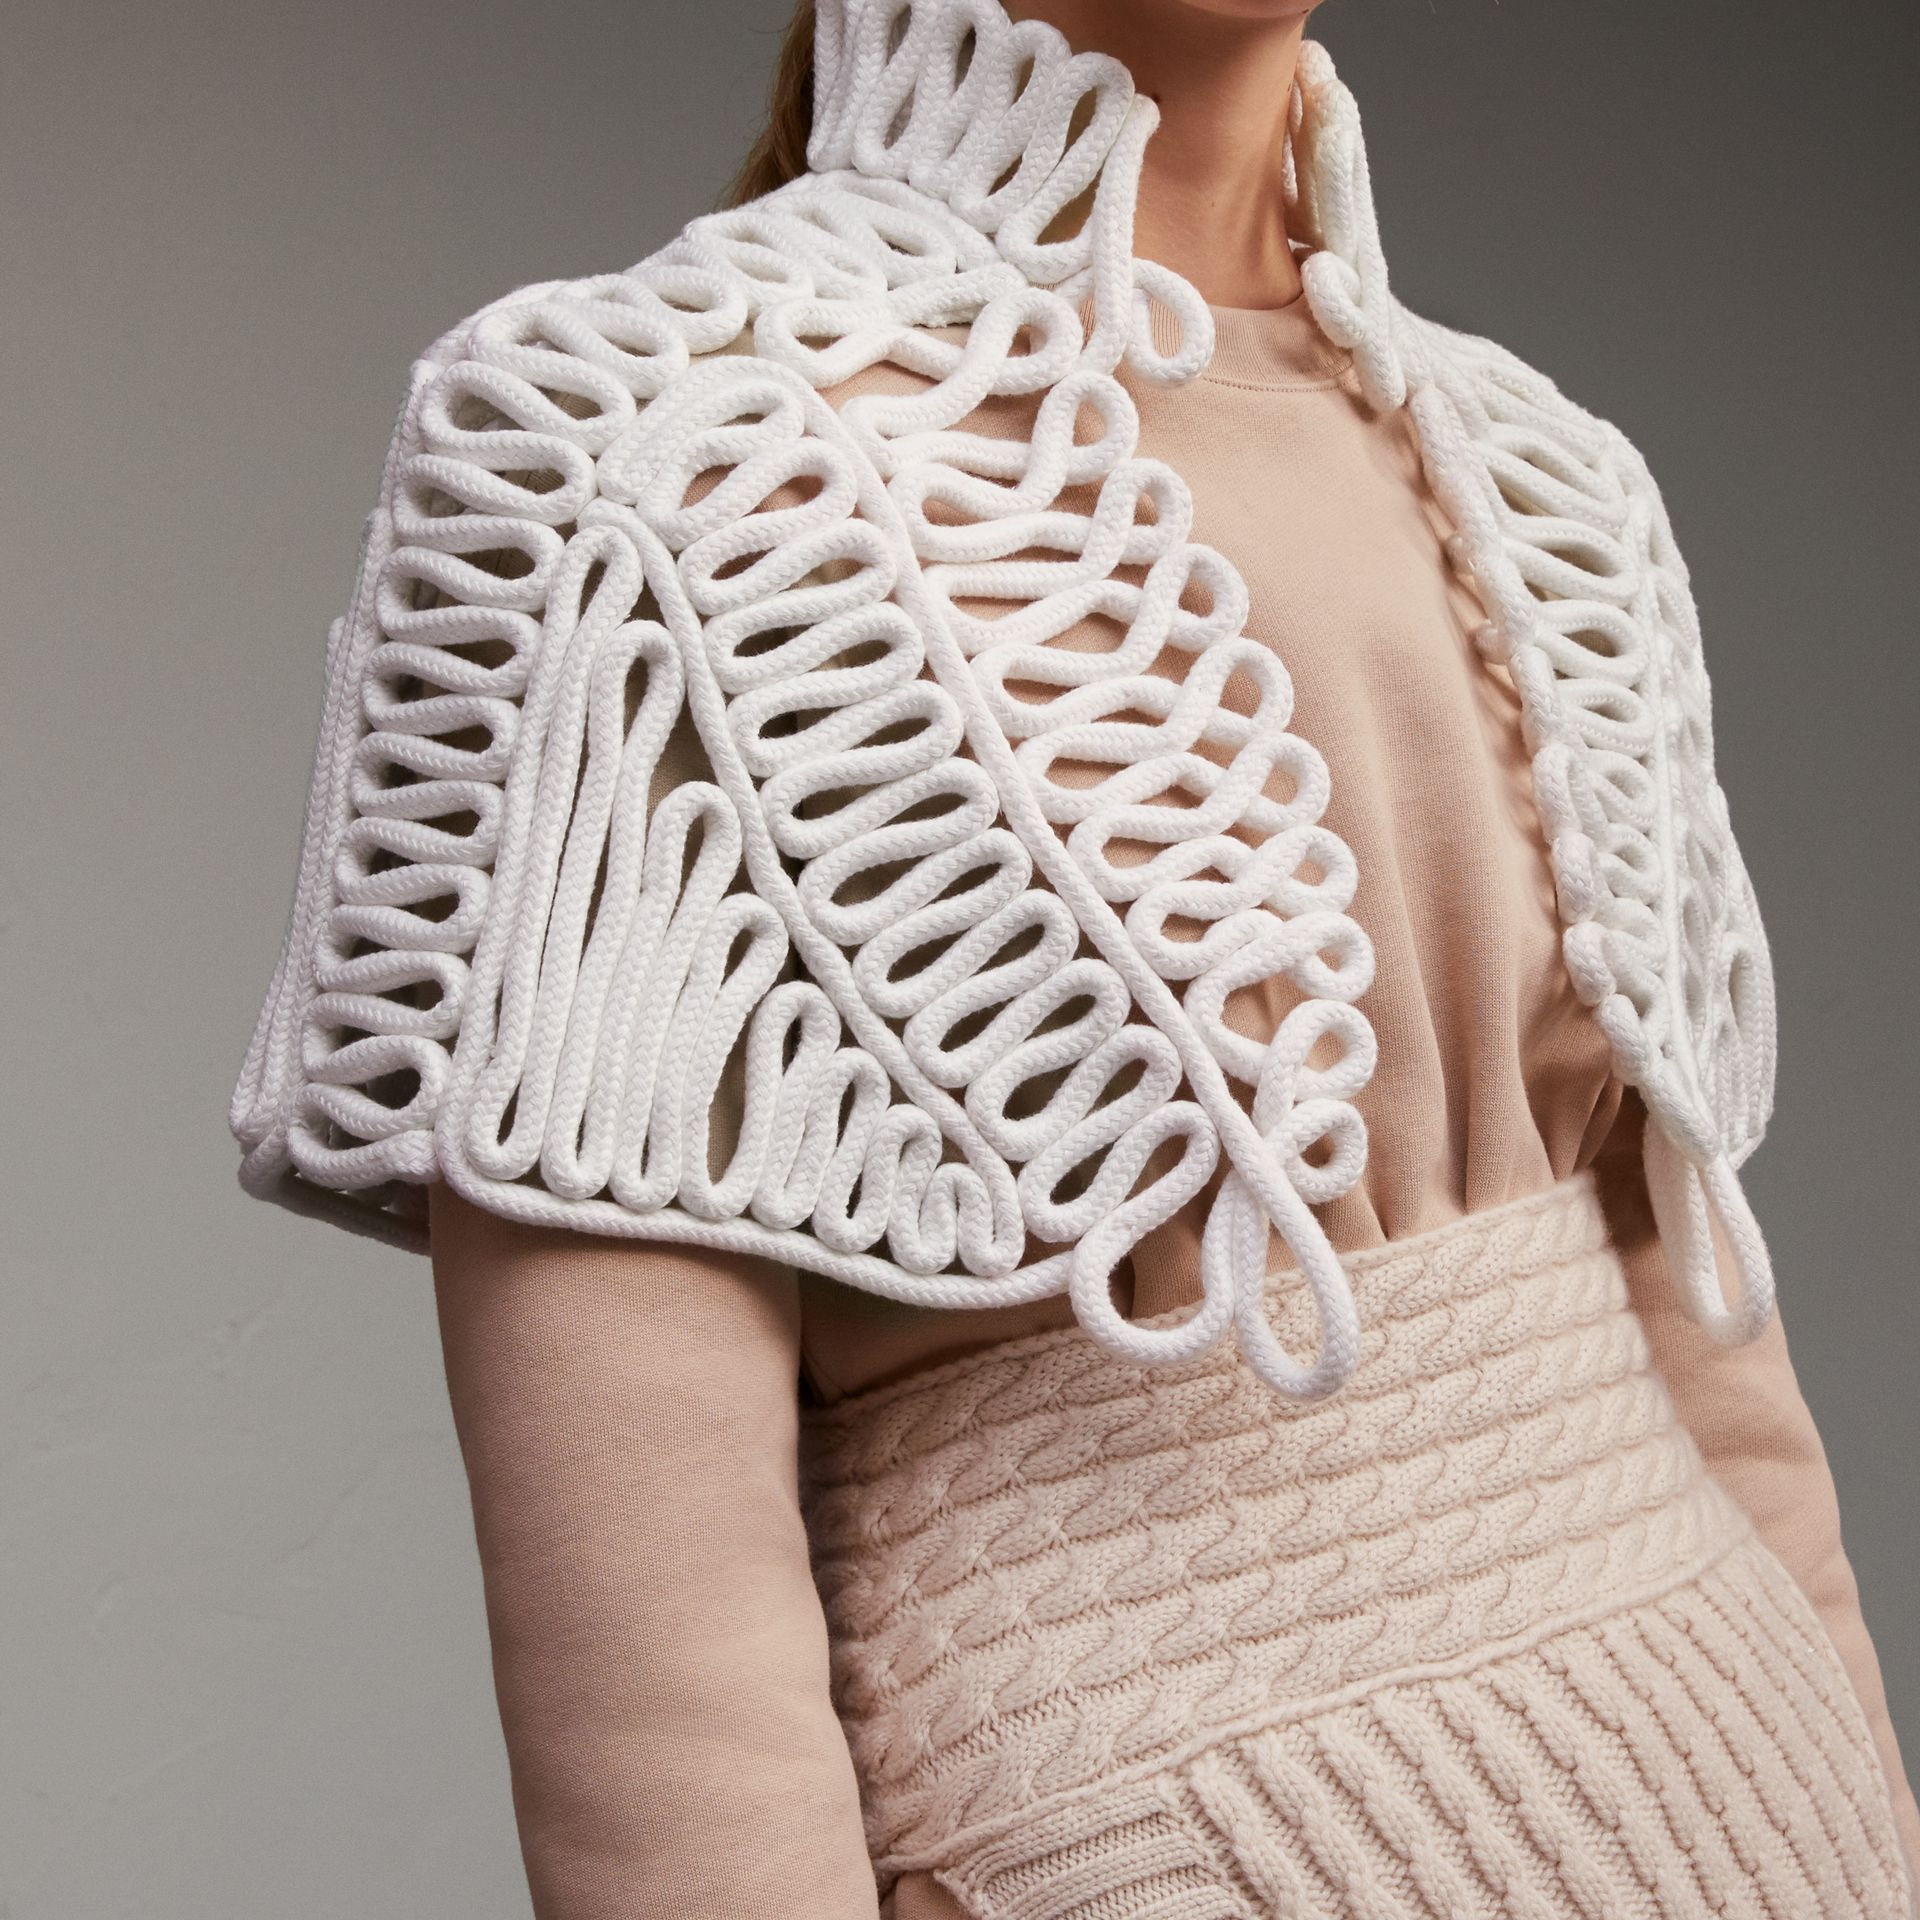 Hand-looped Rope Capelet in White - Women | Burberry - gallery image 5